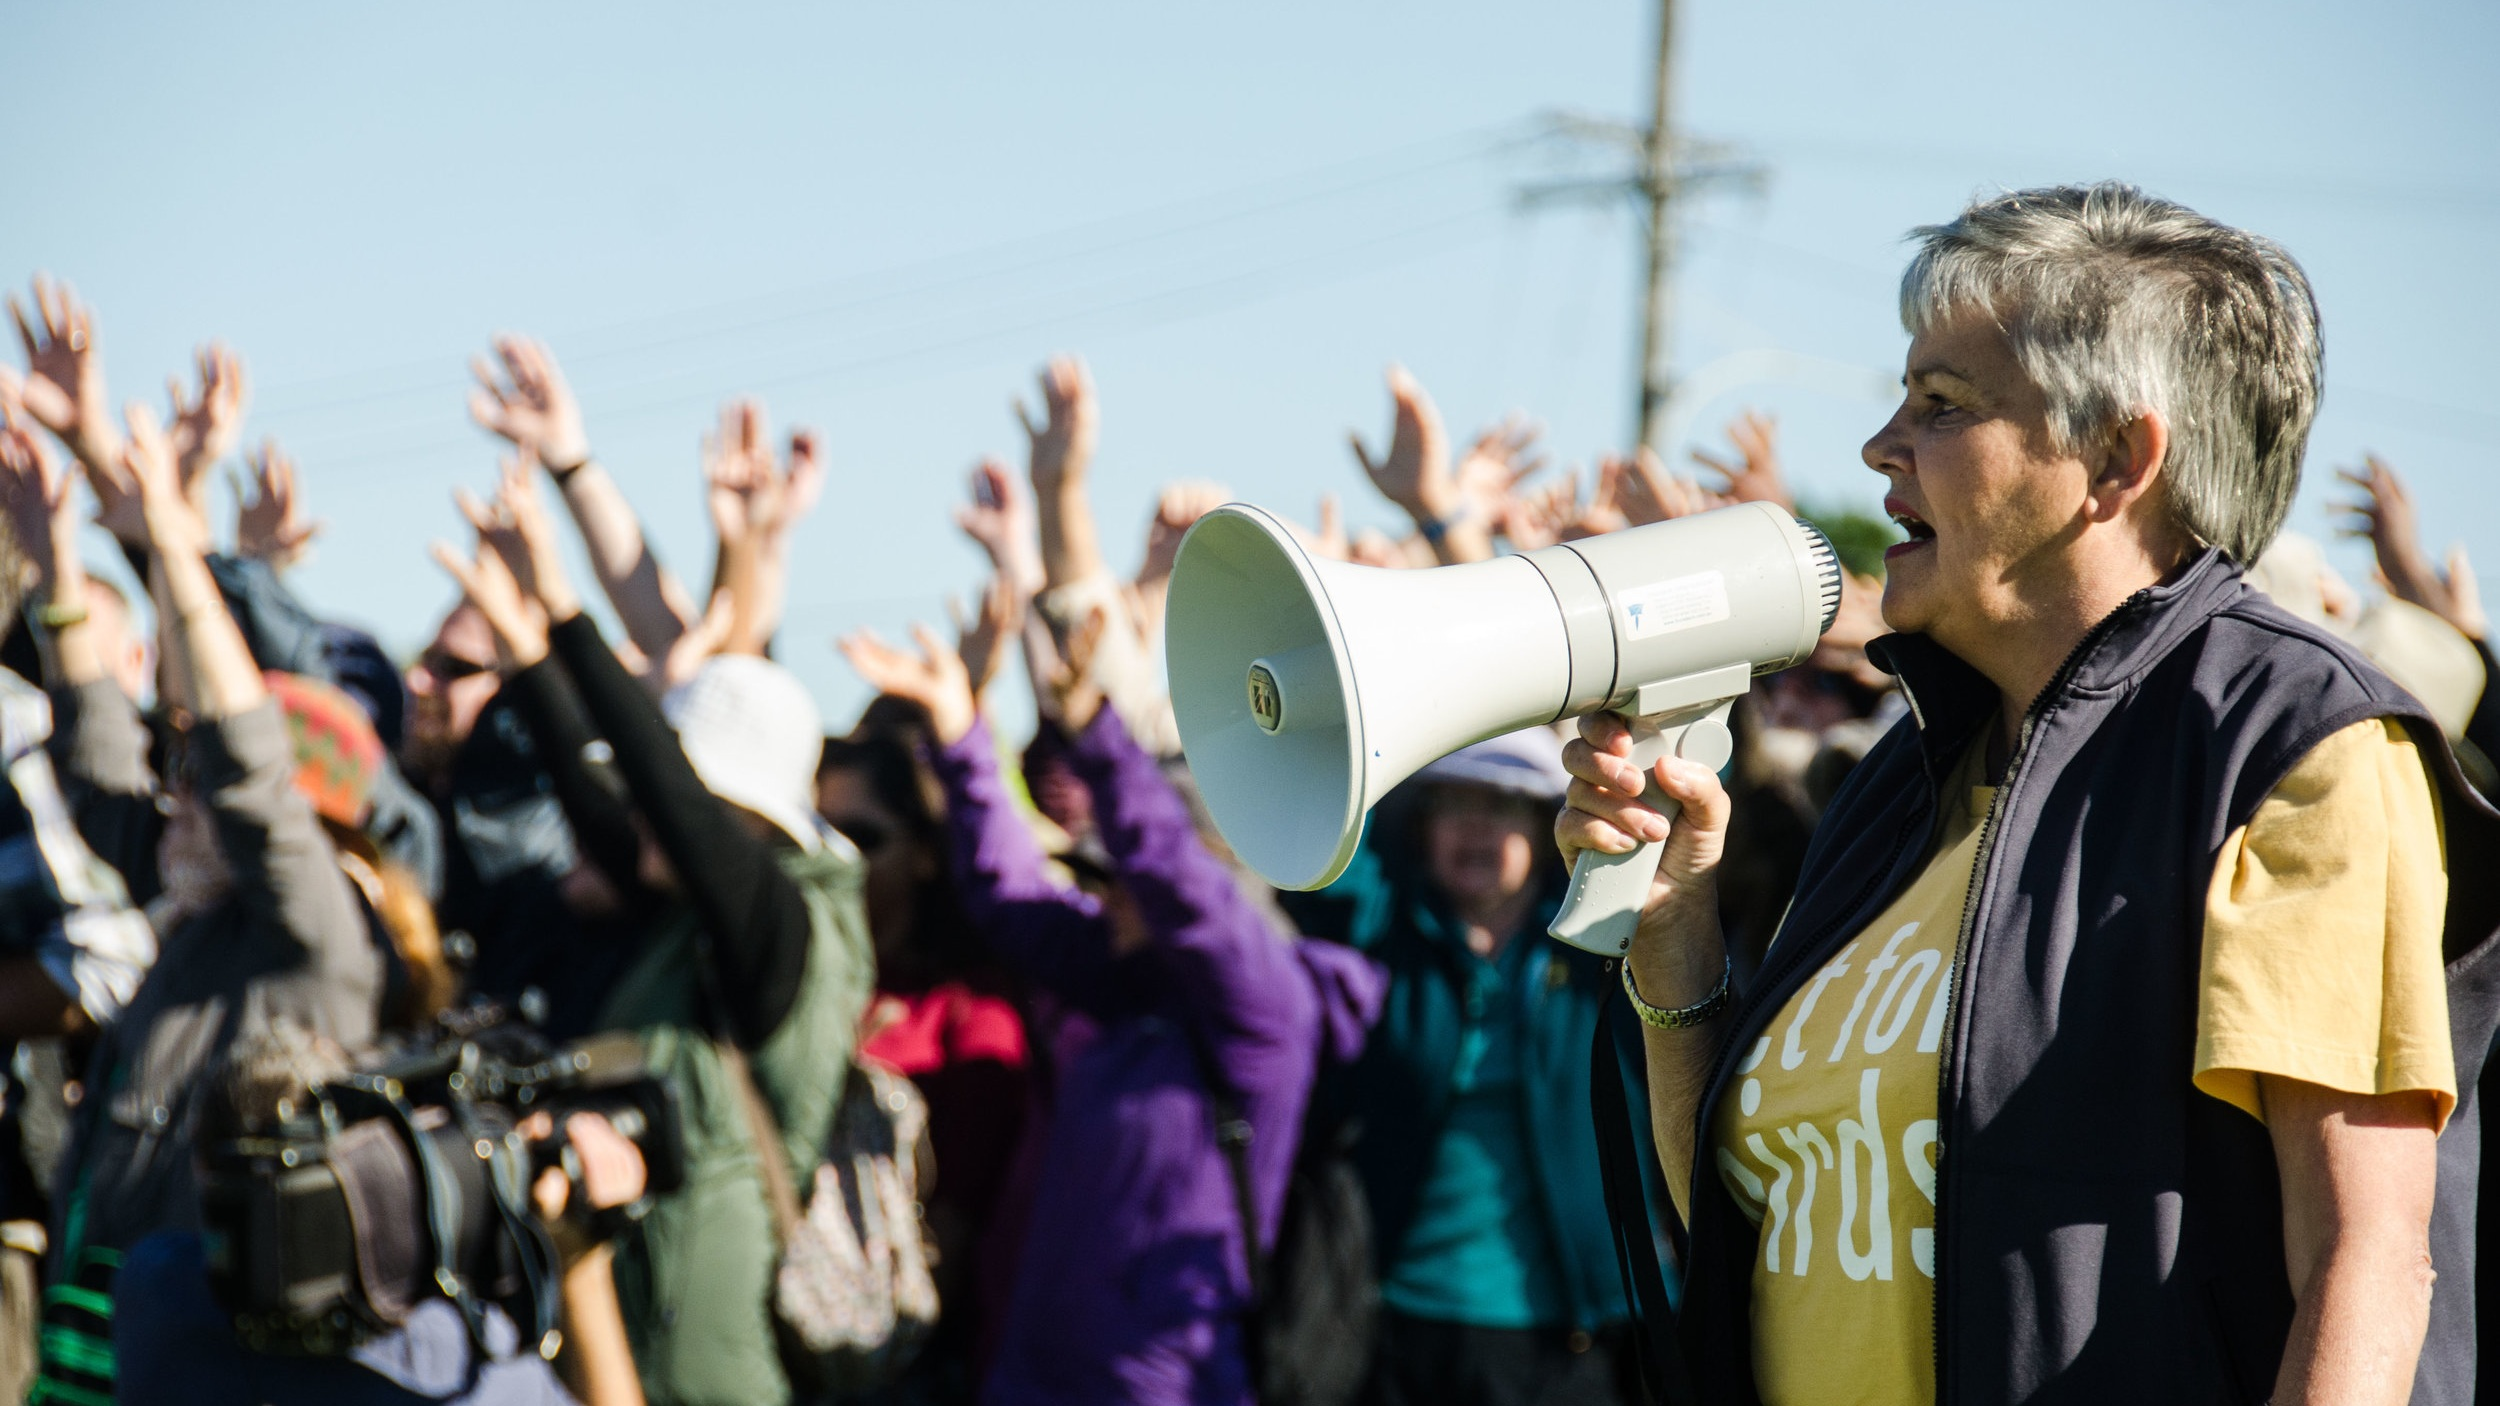 #RESPECT RAMSAR! #RESPECT RAMSAR! #RESPECT RAMSAR! Local leader Judith Hoyle rallies the crowd by Karl Goodsell